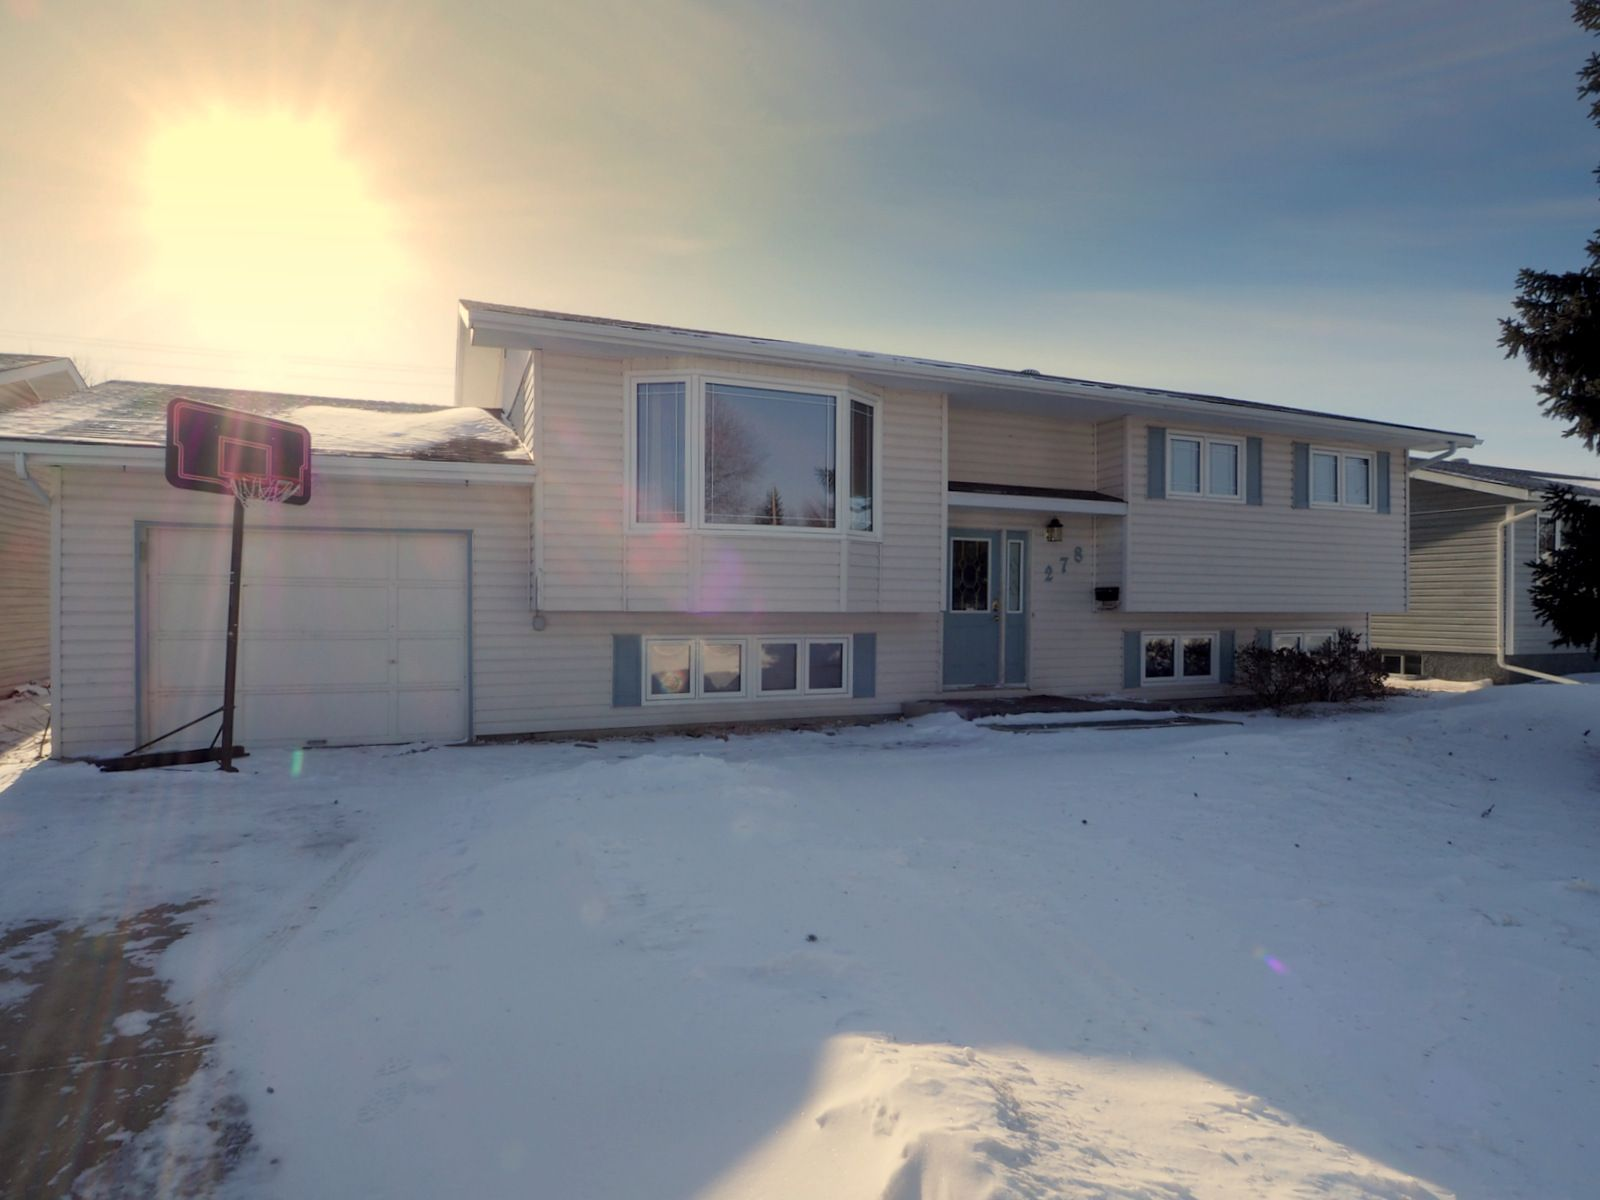 Main Photo: 278 Seneca Street in Portage la Prairie: House for sale : MLS®# 202102669